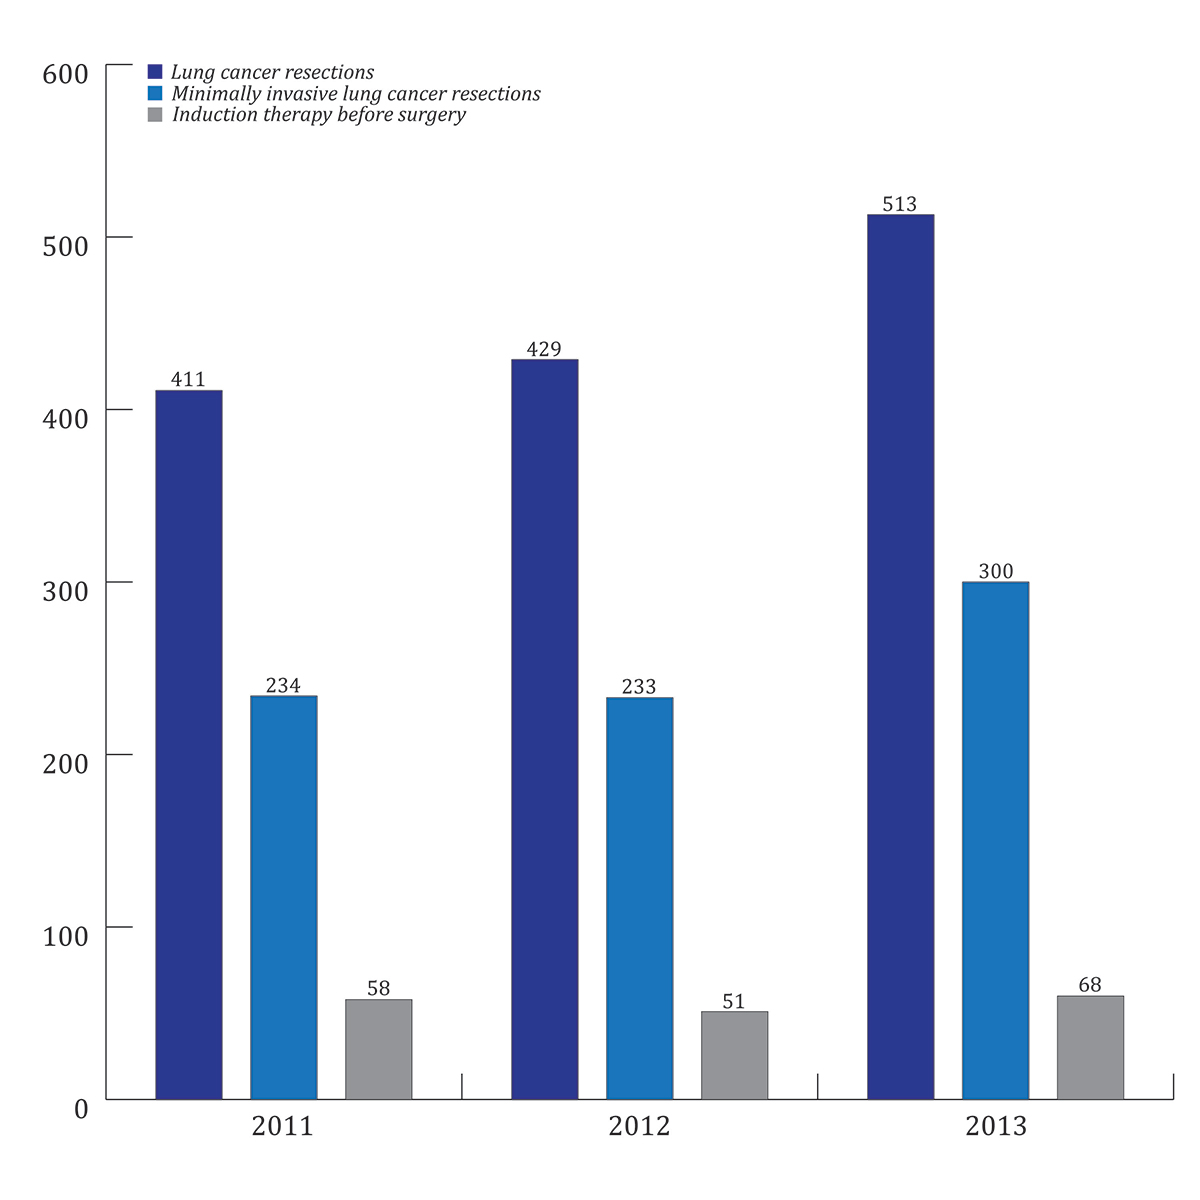 Figure 1. Surgical treatment of lung cancer at Memorial Sloan Kettering, 2011 to 2013